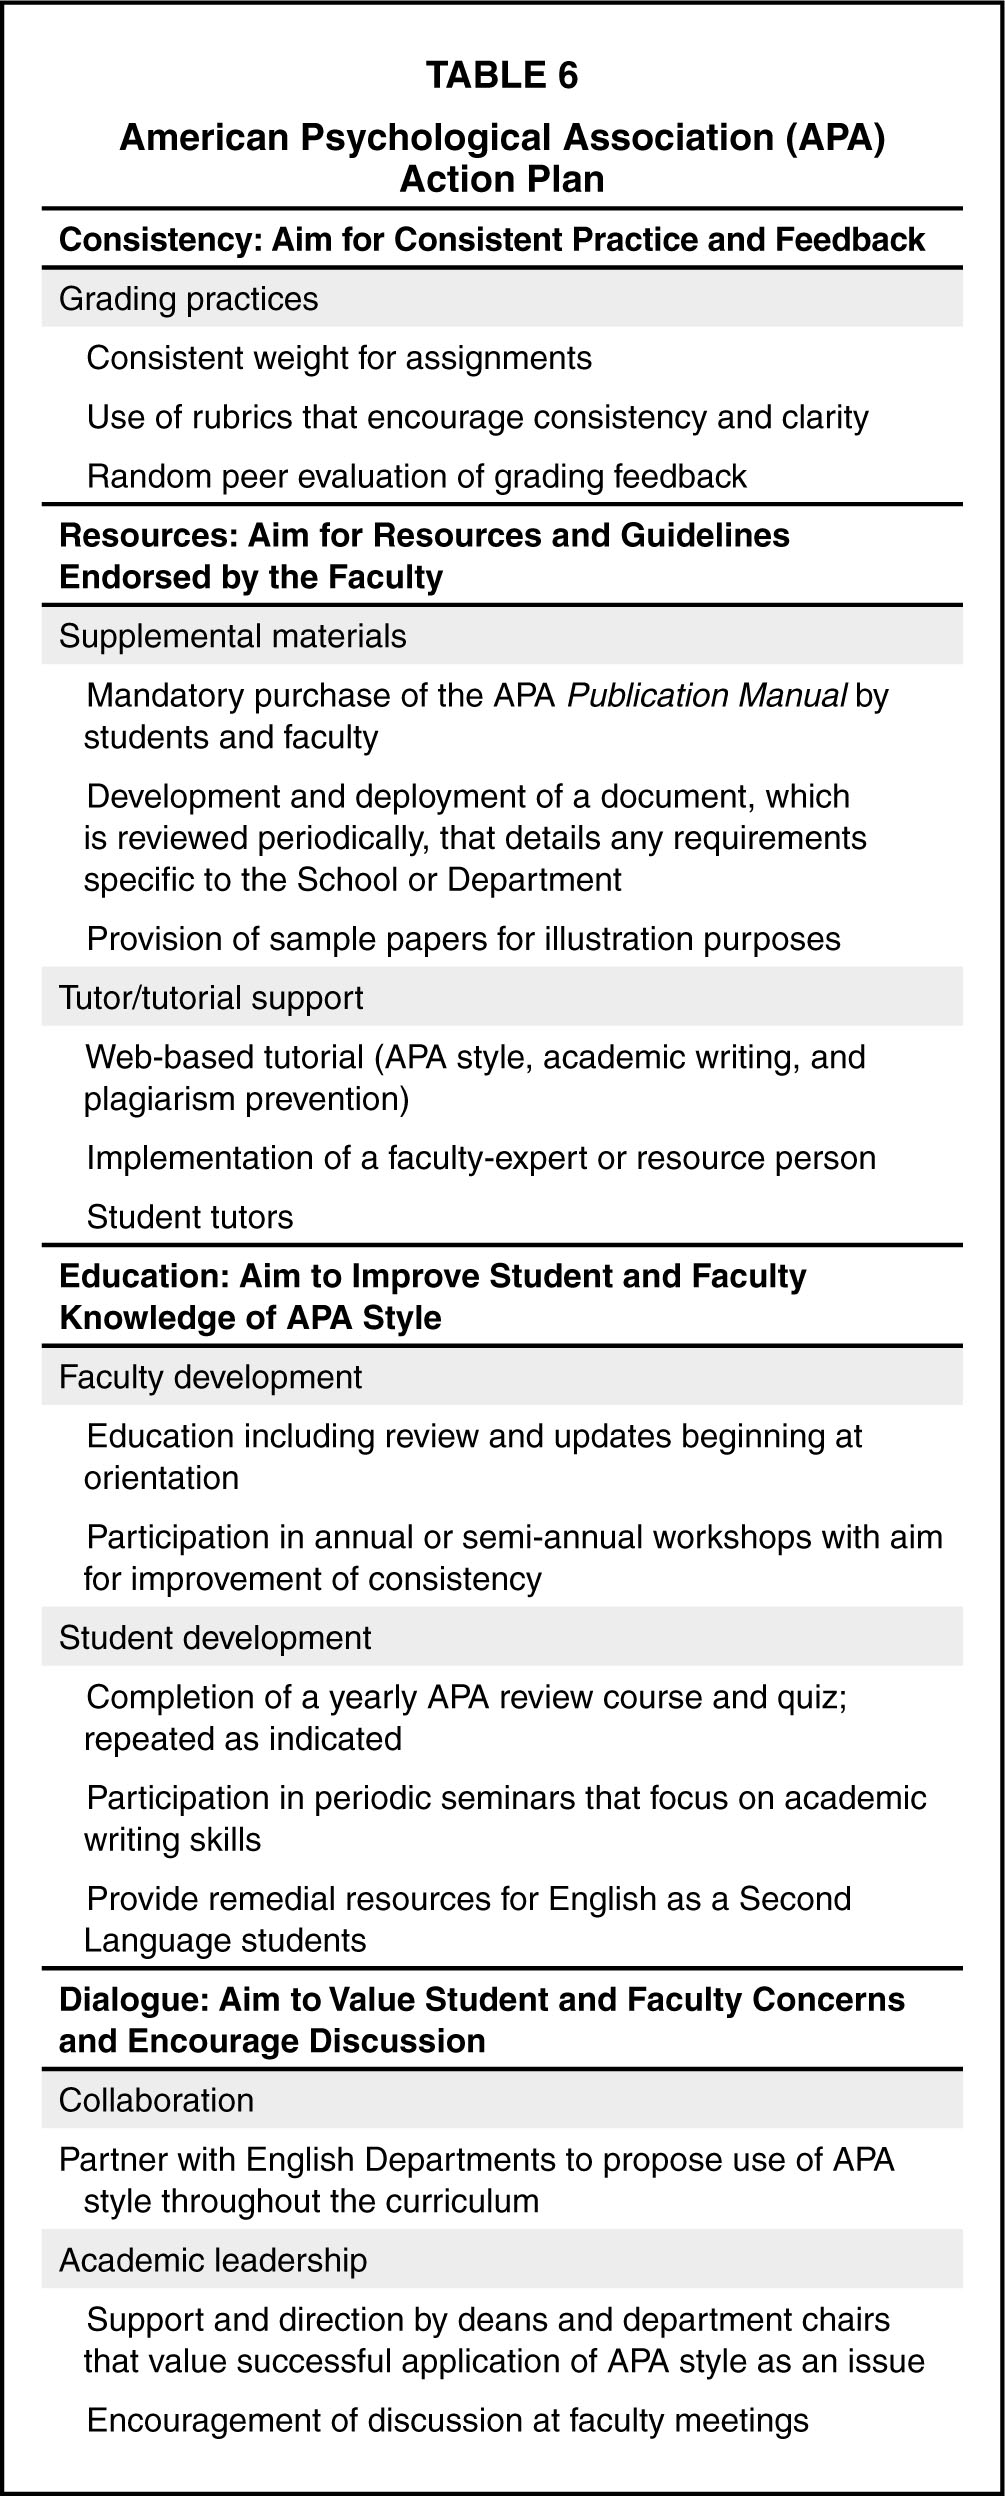 faculty application of the american psychological